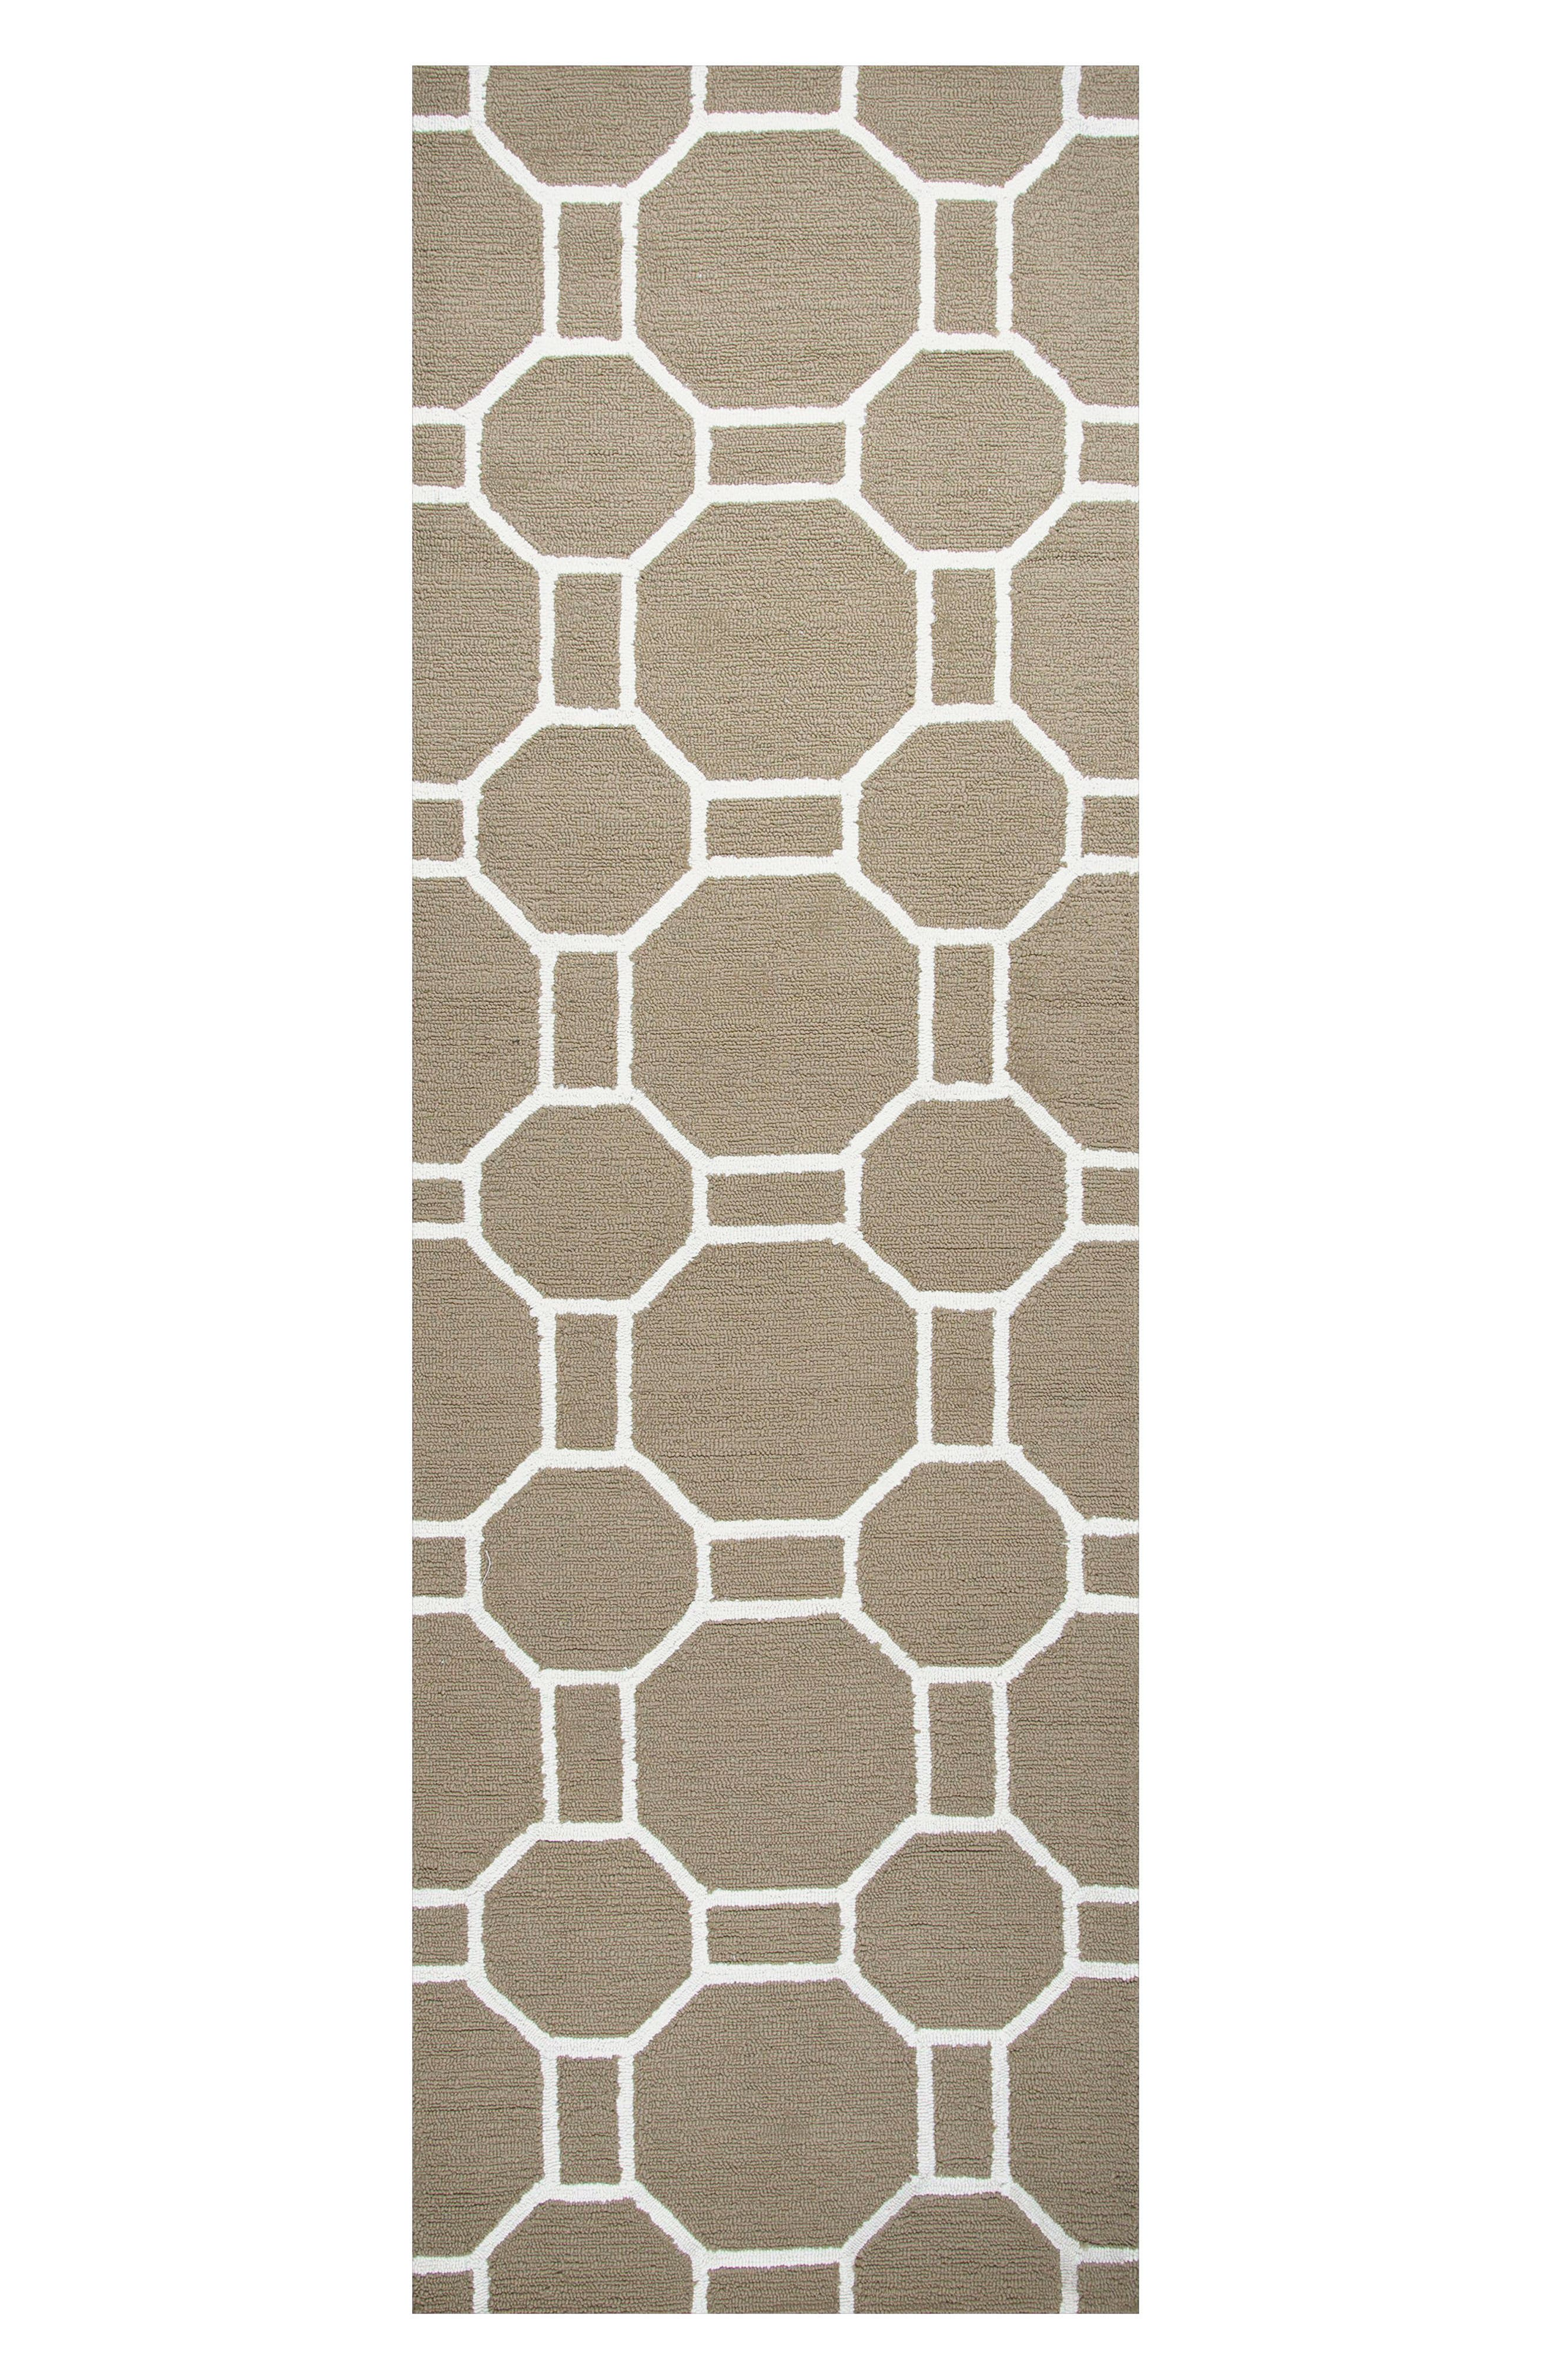 Azzura Hill Felicia Rug,                             Alternate thumbnail 2, color,                             Beige